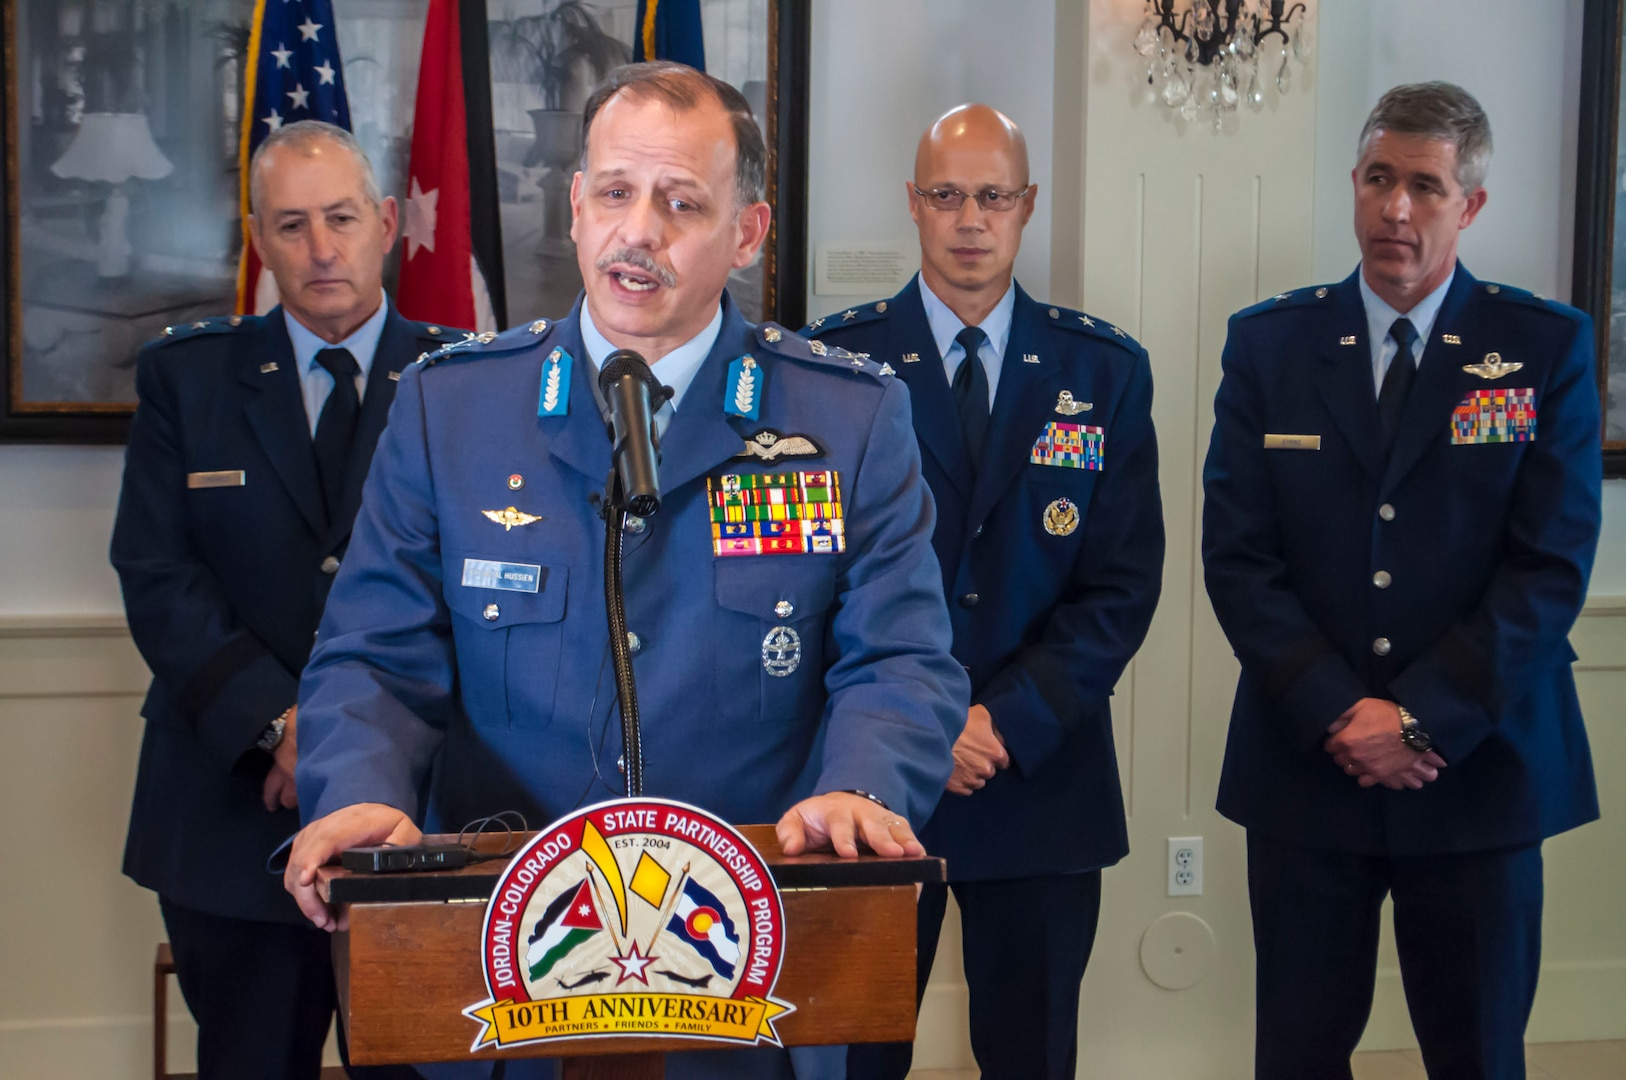 """His Royal Highness Lt. Gen. Prince Feisal bin Al-Hussein speaks, at a news conference, about the current struggles in the Middle East, saying that the """"United States has an ally in Jordan.""""  Behind Feisal are: Maj. Gen. H. Michael Edwards, the Adjutant General of Colorado; Maj. Gen. Douglas McGregor, the National Guard Bureau director of Strategic Policy, Plans and International Affairs; and Brig. Gen. Peter Byrne, director of Joint Staff for the Colorado National Guard.  In recognition of the 10th Anniversary between the Hashemite Kingdom of Jordan and the Colorado National Guard, Feisal and Maj. Gen. Mansour Al-Jobour, the commander fo the Royal Jordanian Air Force, visited Colorado and attended an office call with Colorado Gov. John Hickenlooper, escorted by Edwards.  (U.S. Air National Guard Photo by Capt. Darin Overstreet /RELEASED)"""